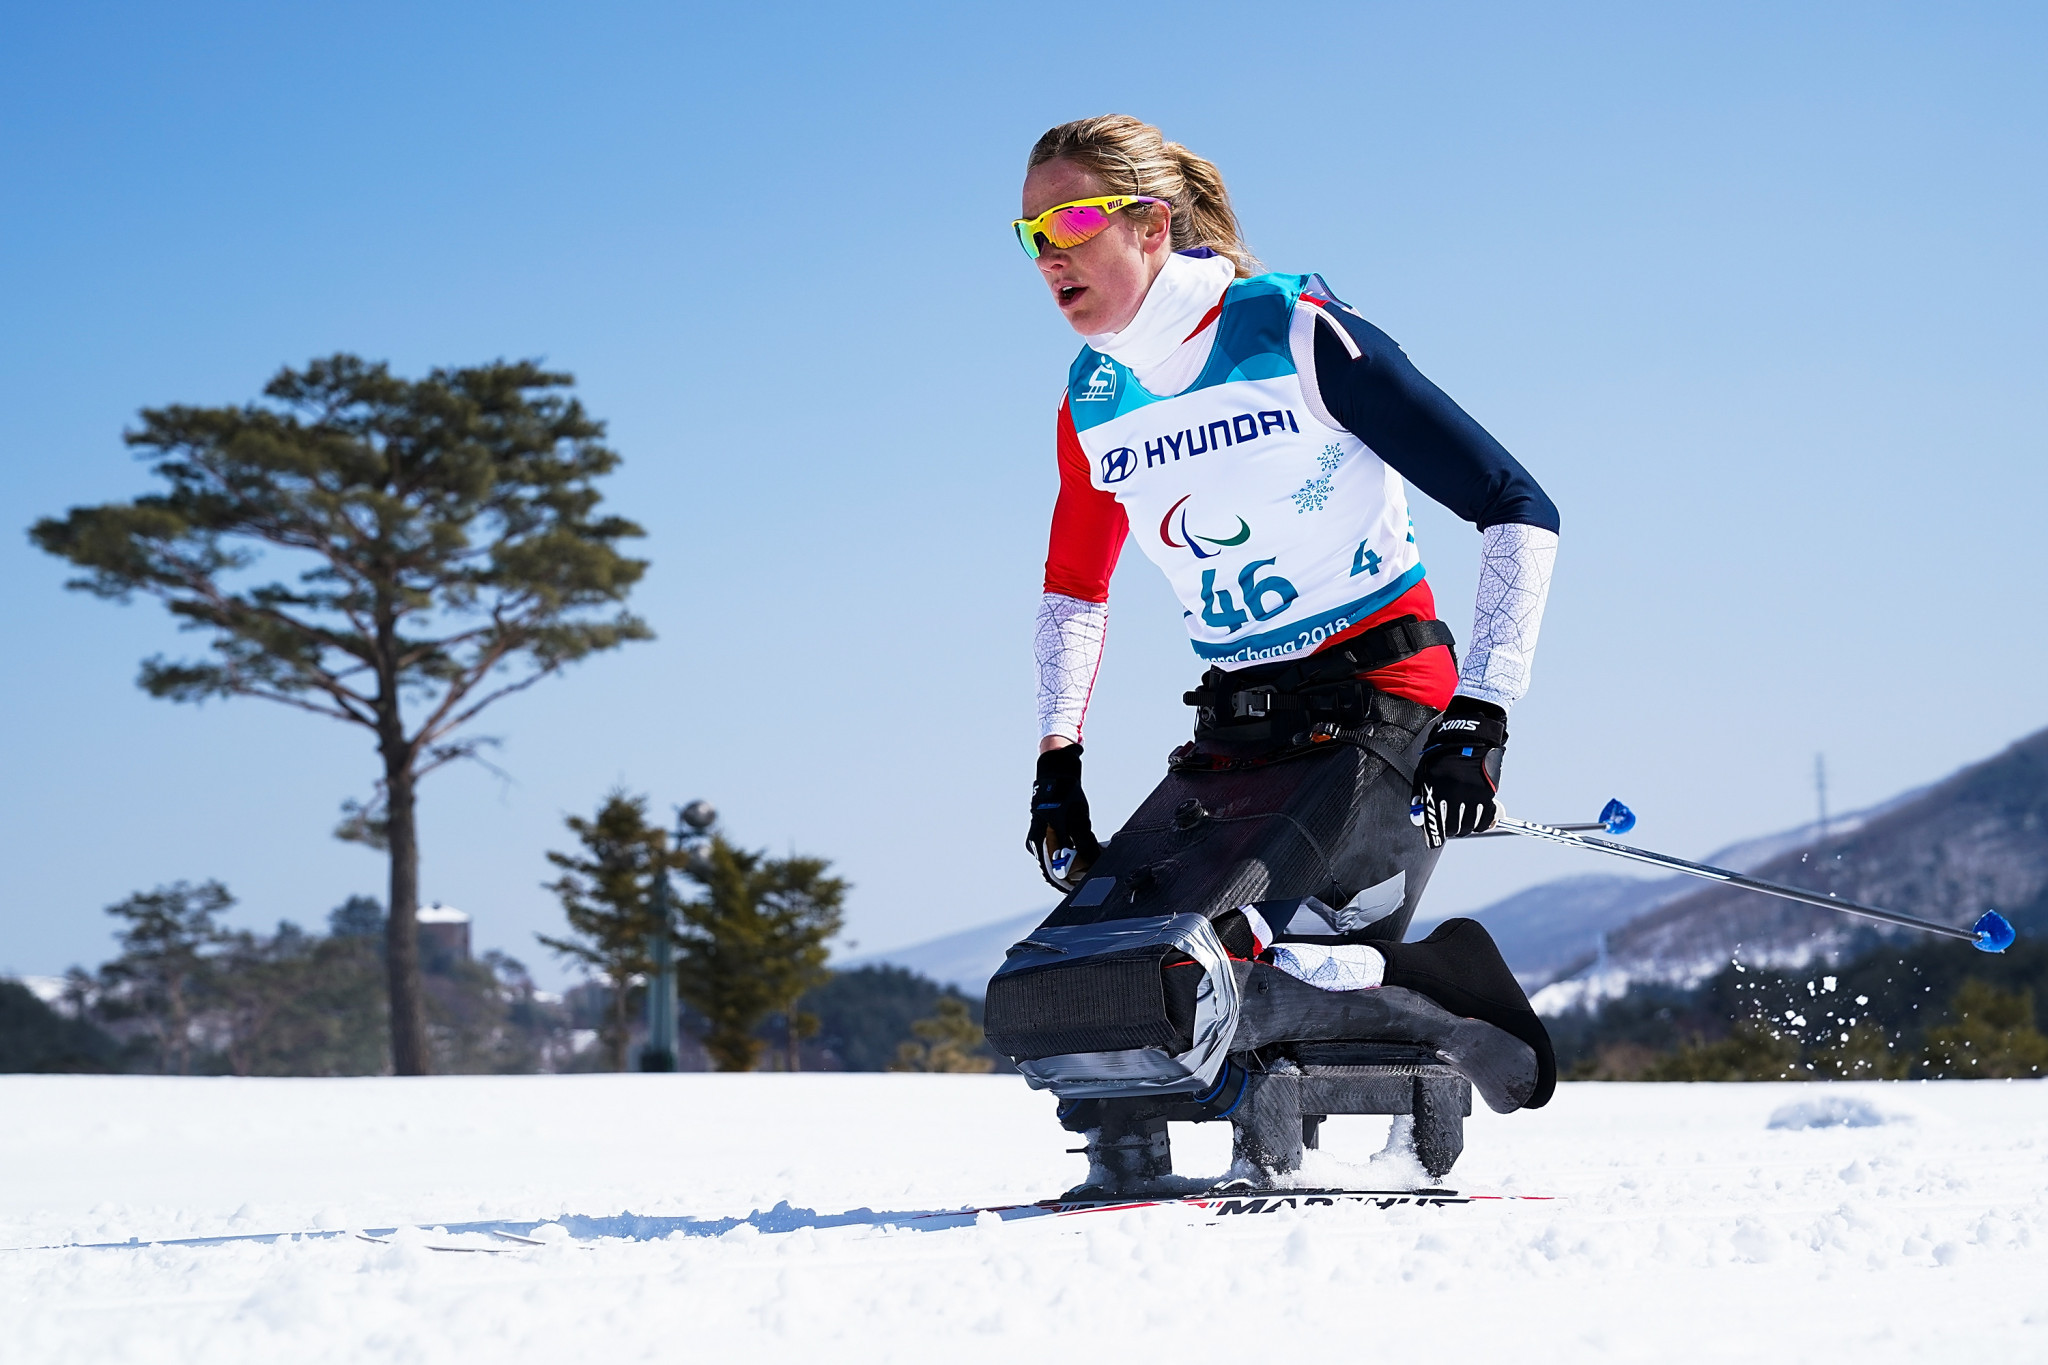 Skarstein looking to make ground on leaders at World Para Nordic Skiing World Cup in Germany